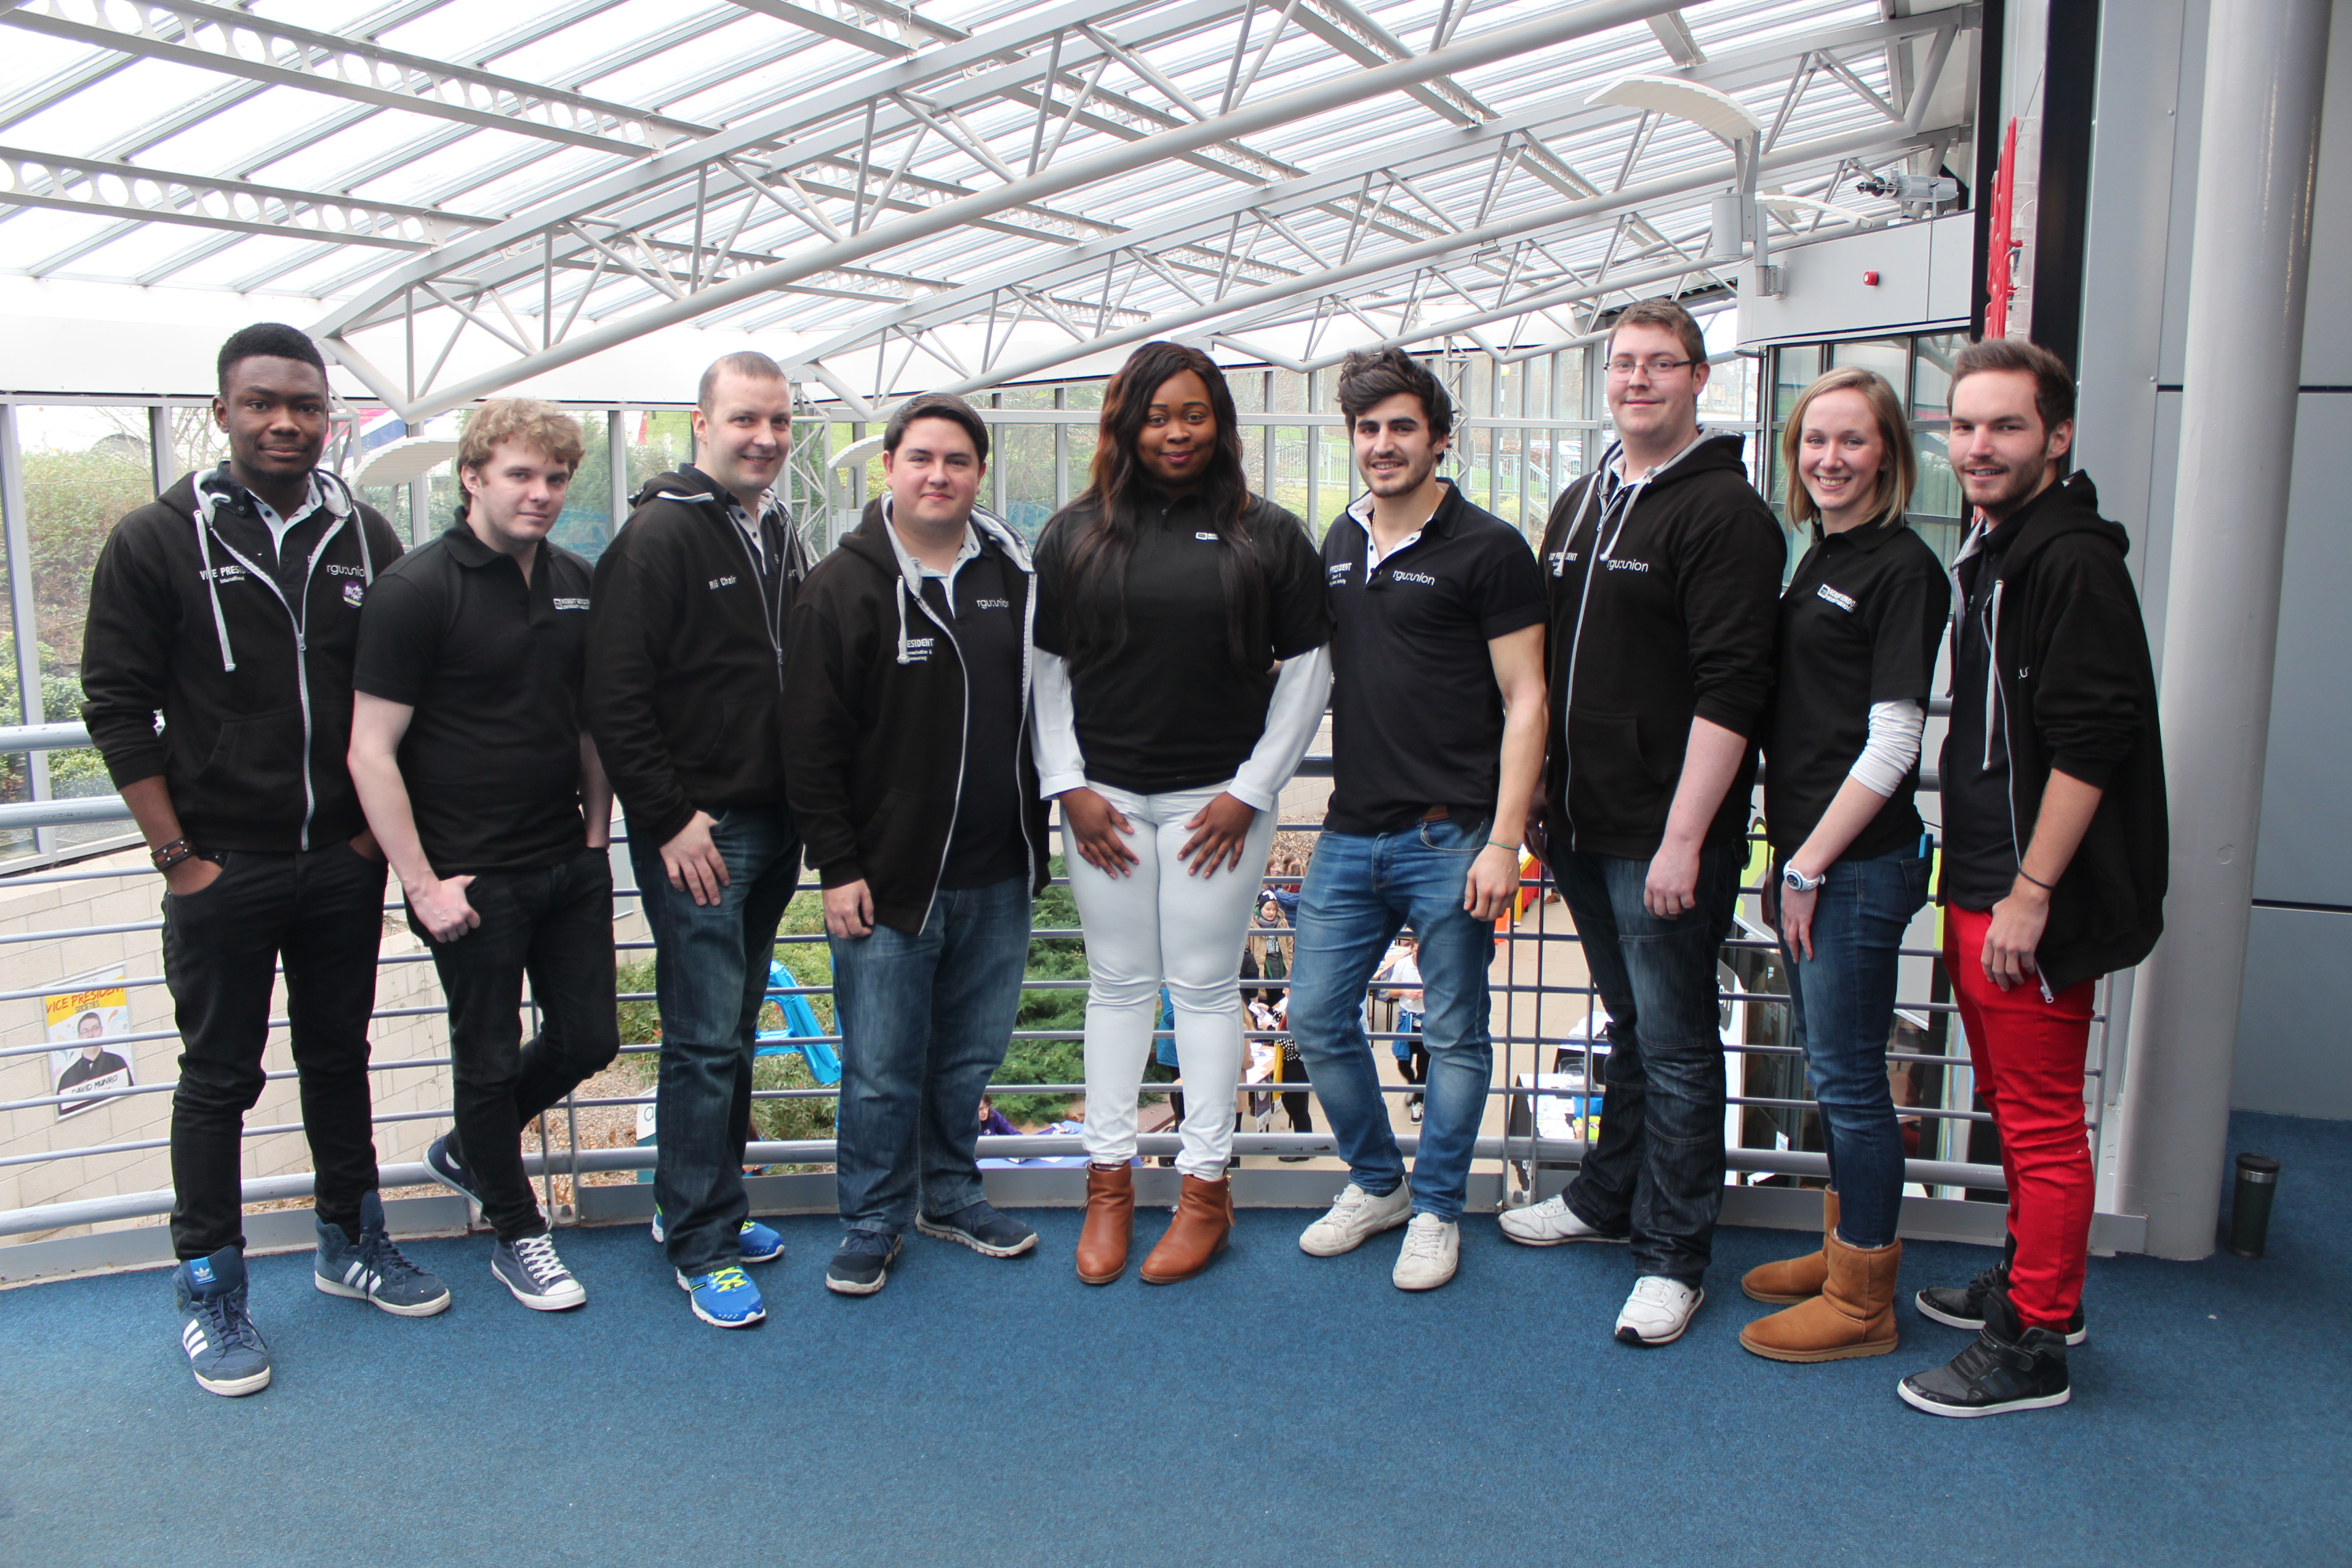 RGU:Union Executive Committee 2015-16